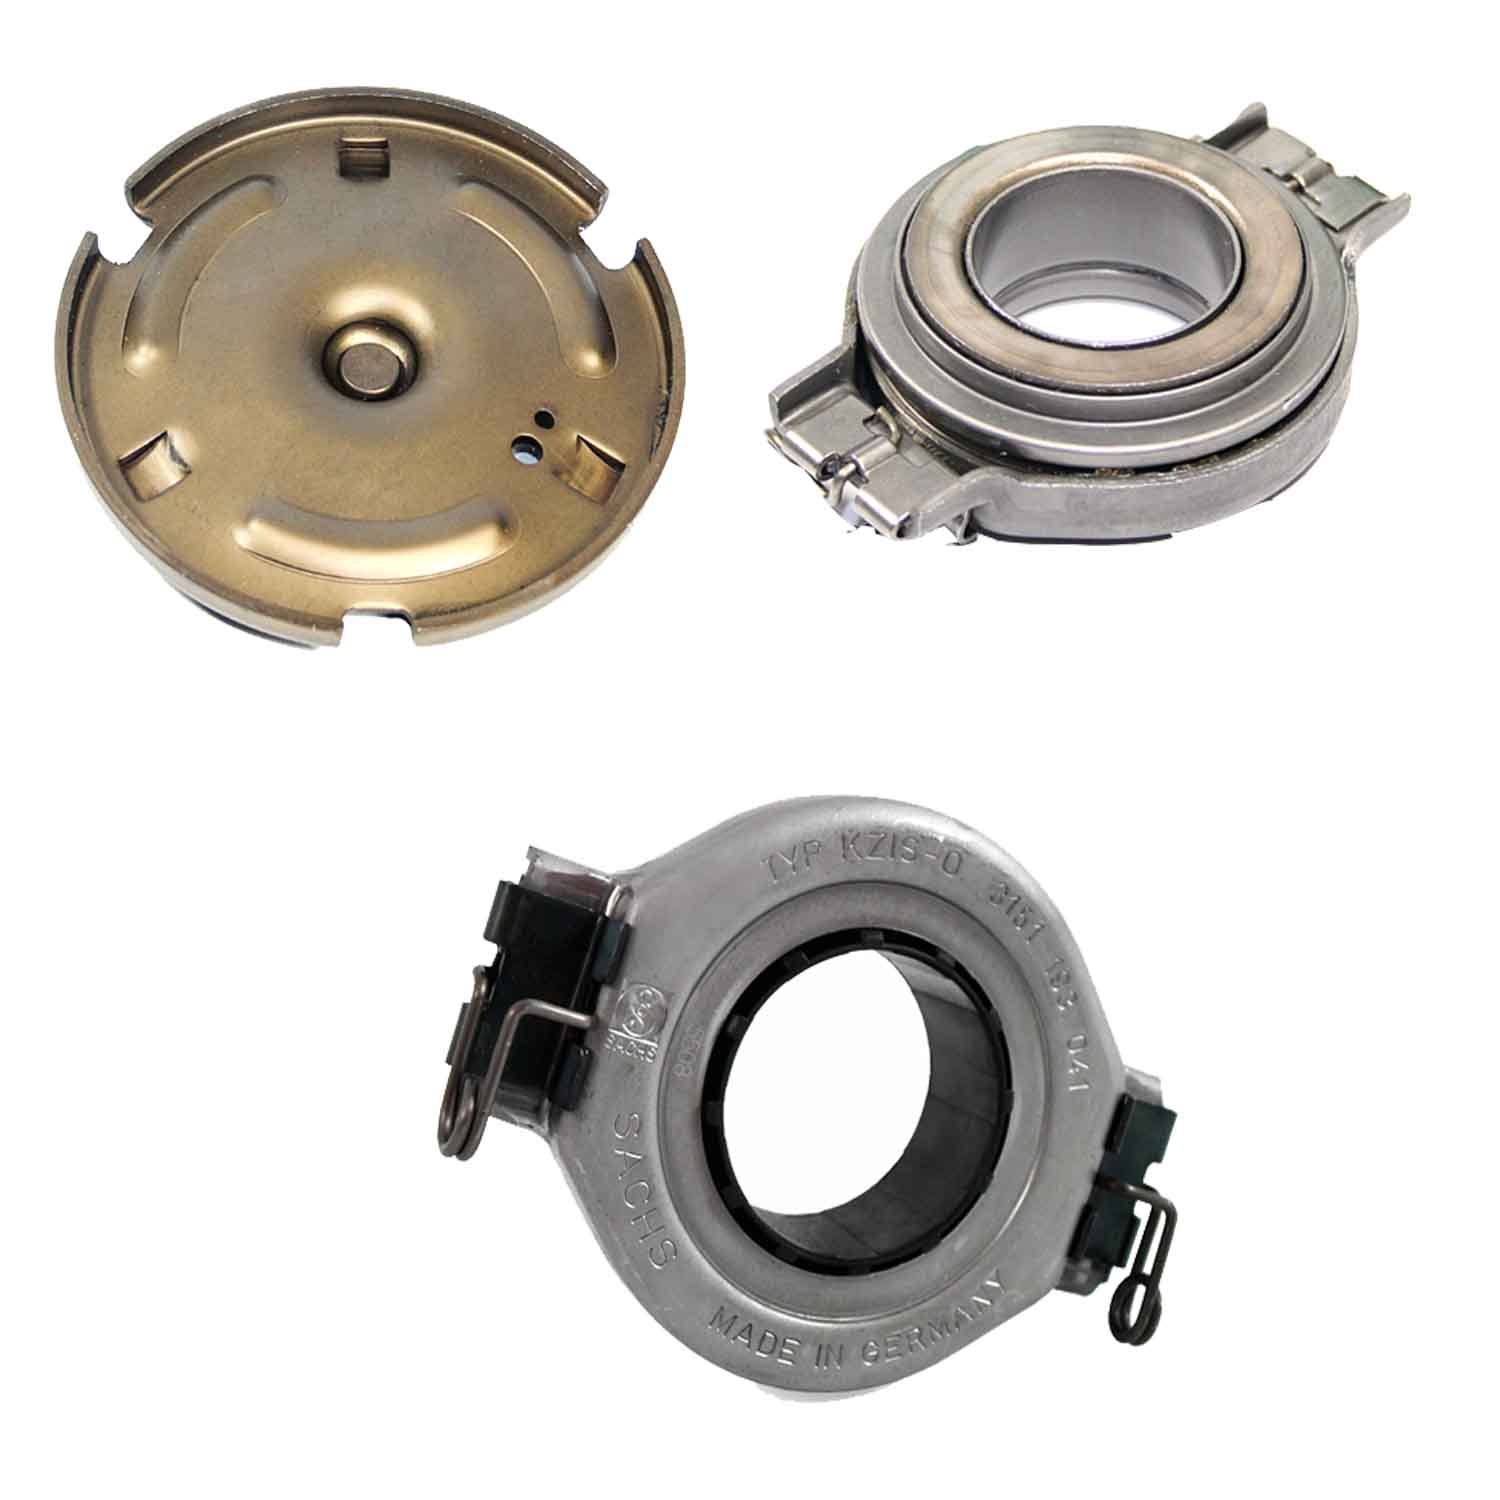 Release Bearings & Accessories